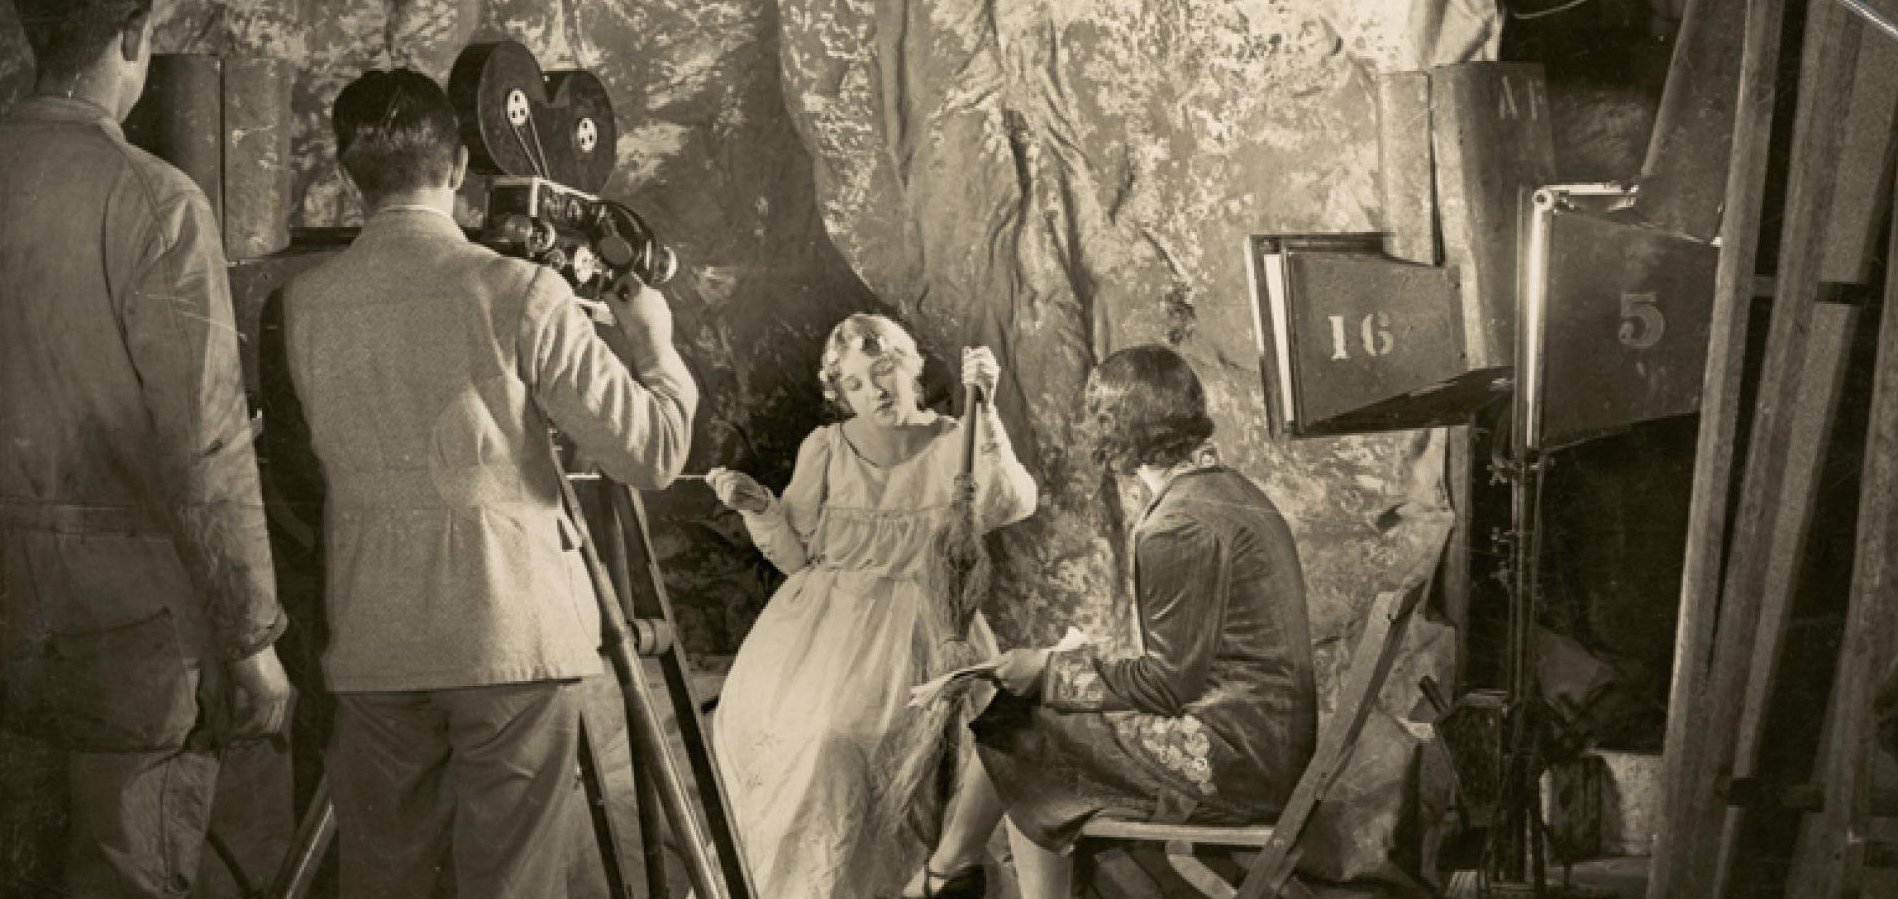 The goddesses of early cinema